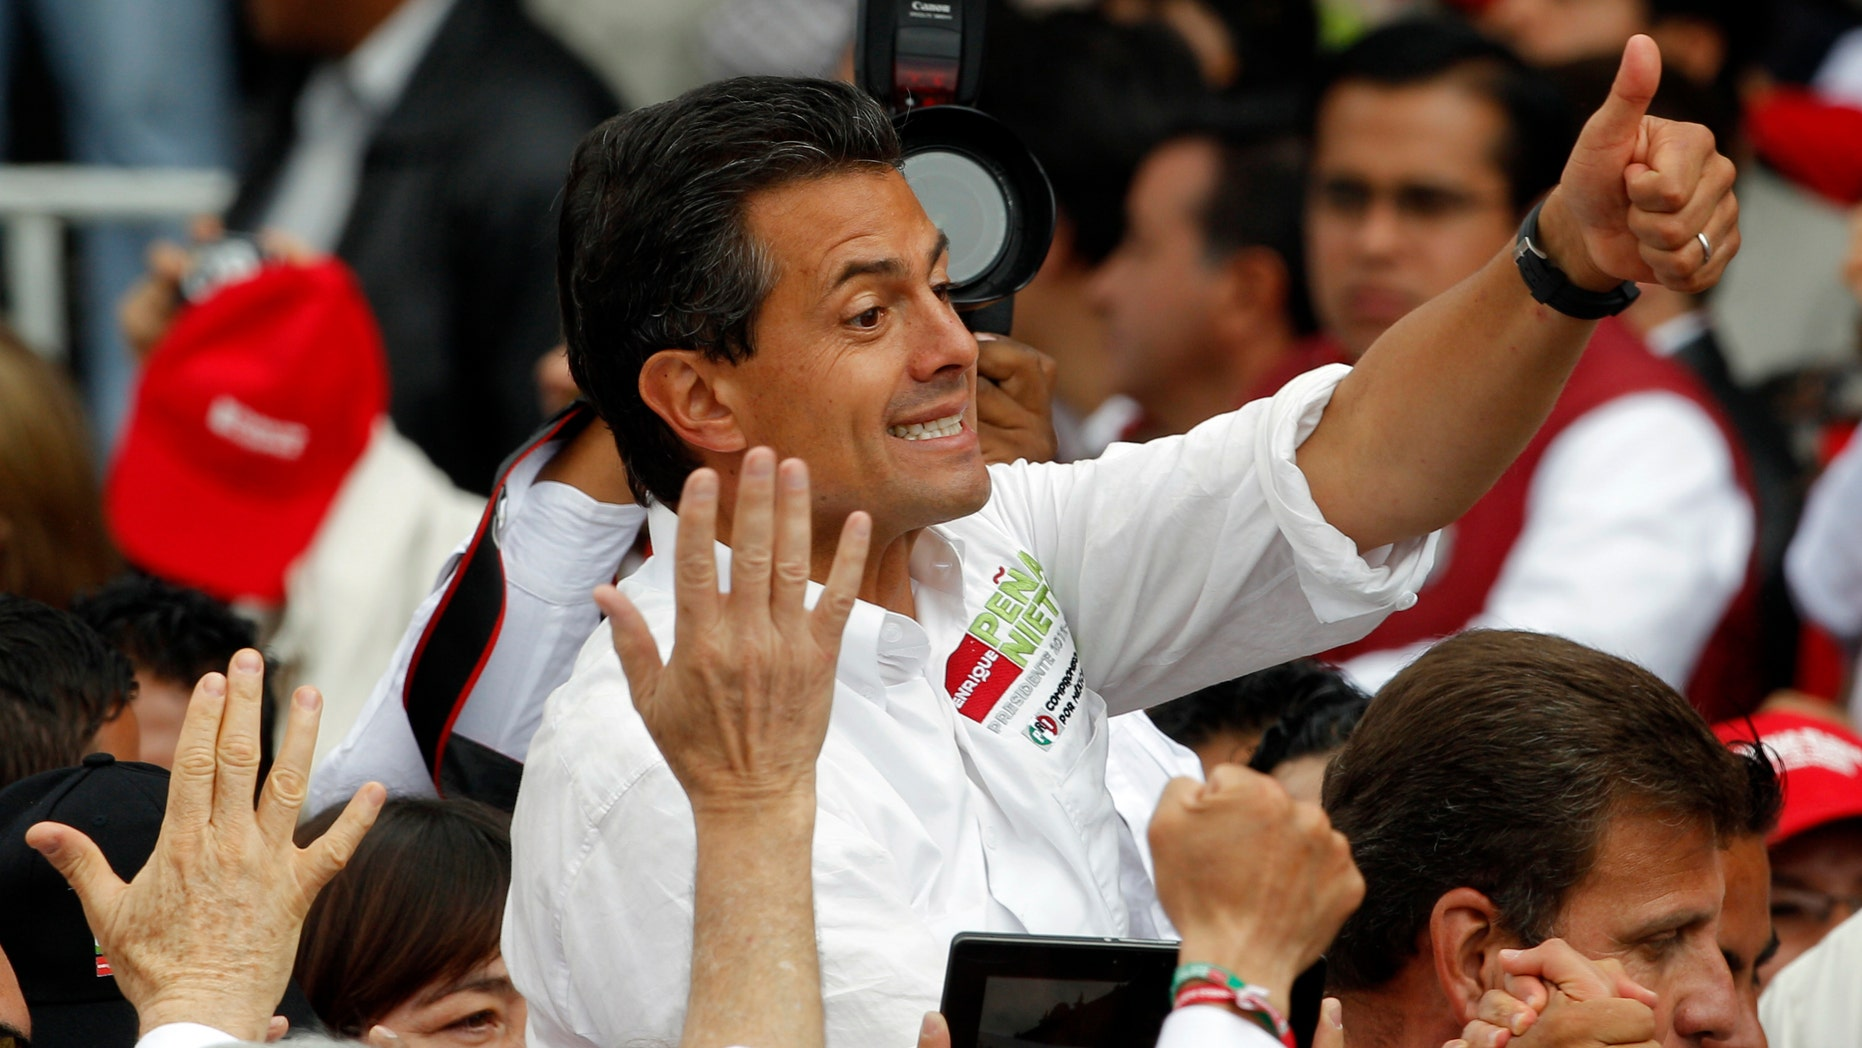 Presidential candidate Enrique Peña Nieto of the Institutional Revolutionary Party (PRI), flashes a thumbs up to supporters during his closing campaign rally in Toluca, Mexico, on Wednesday. (AP Photo/Andres Leighton)